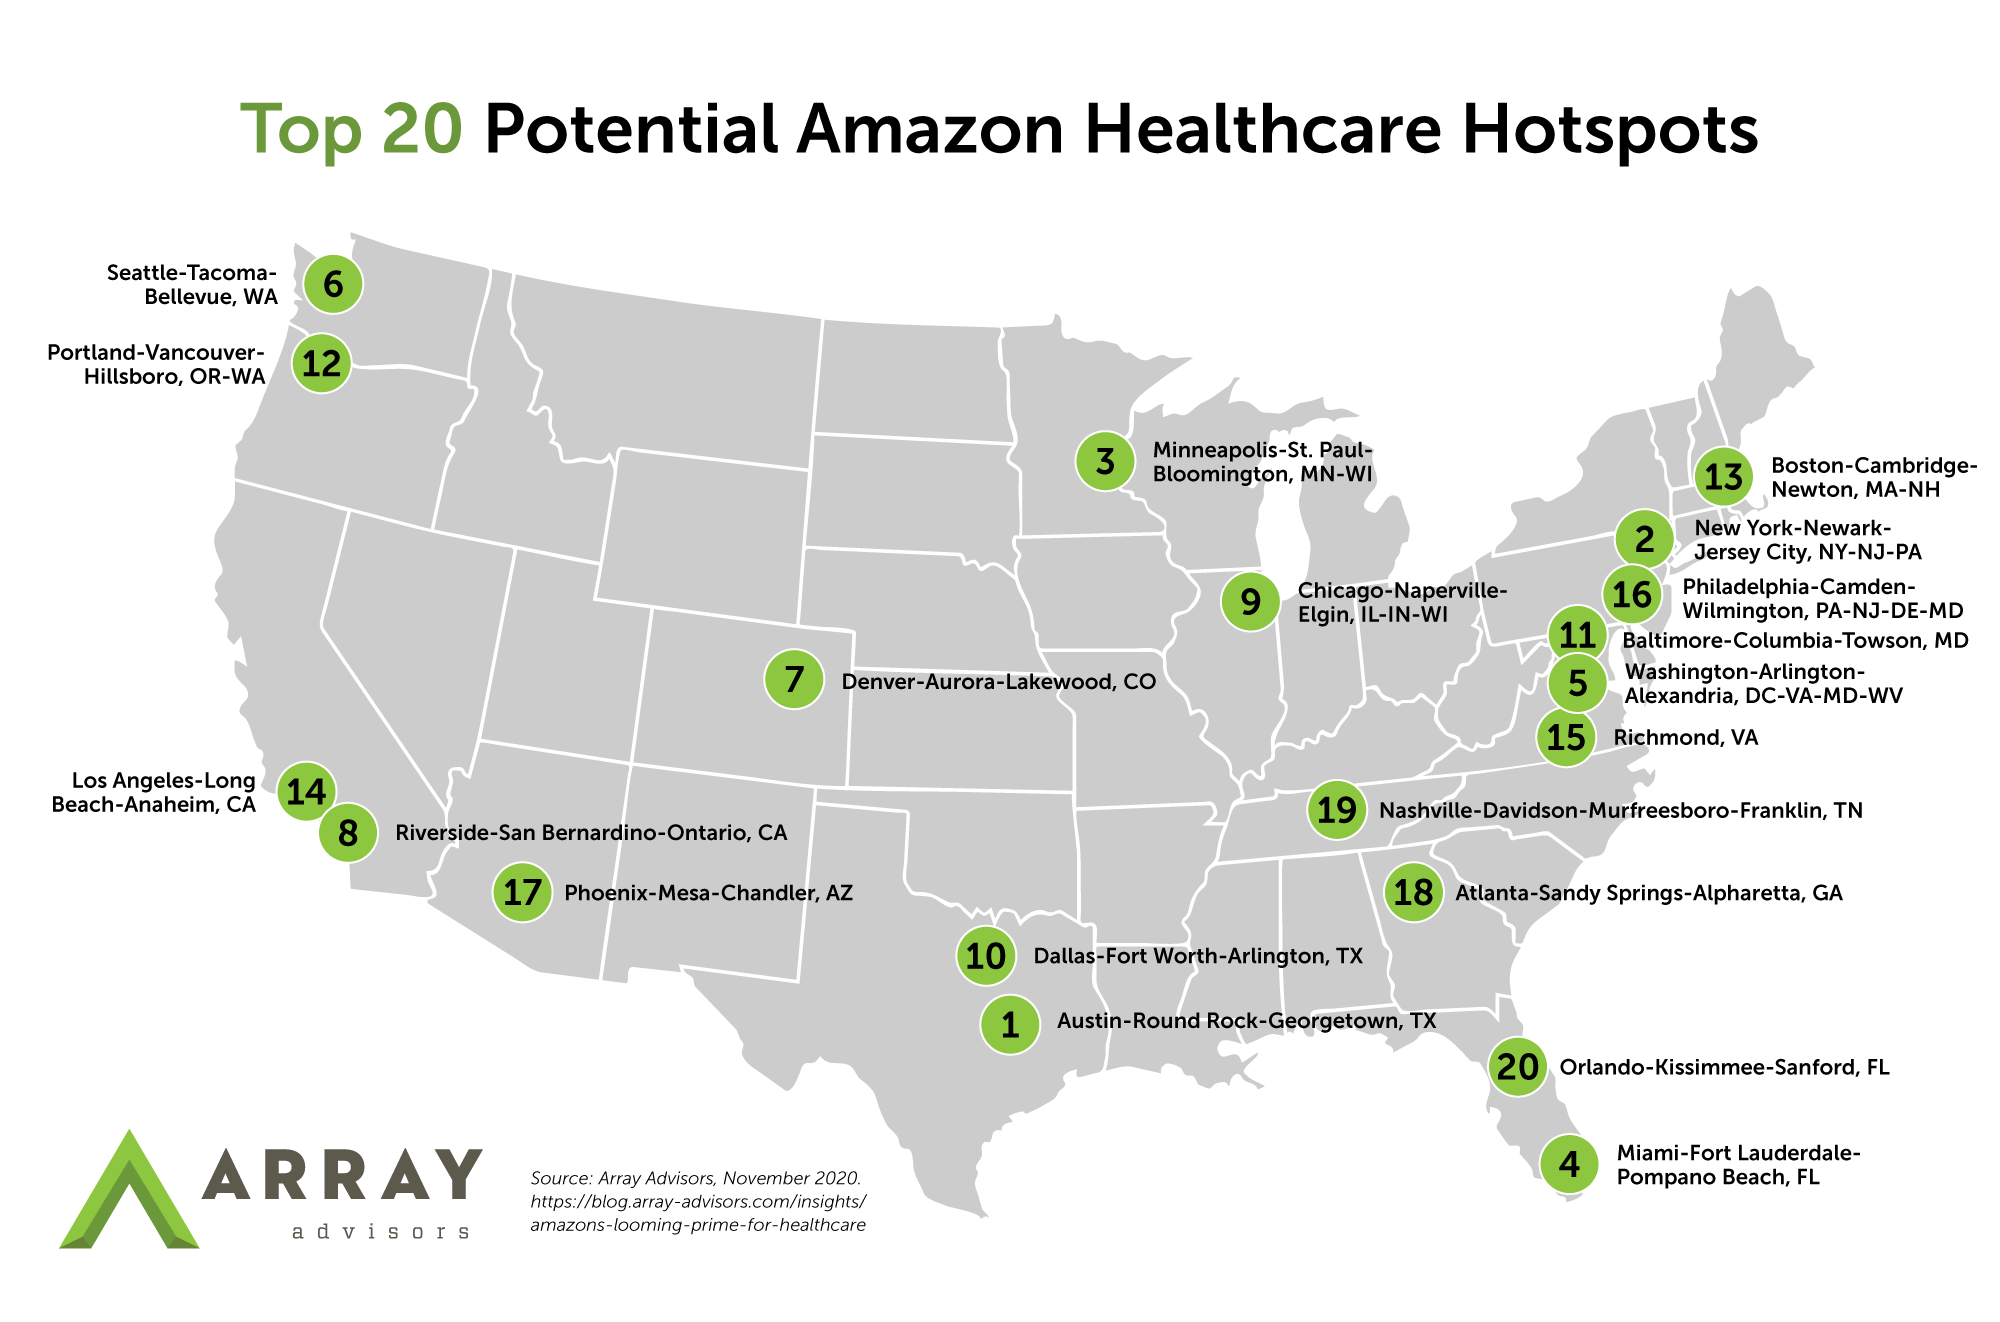 Map Pinpointing 20 Predicted Amazon Healthcare Hotspots